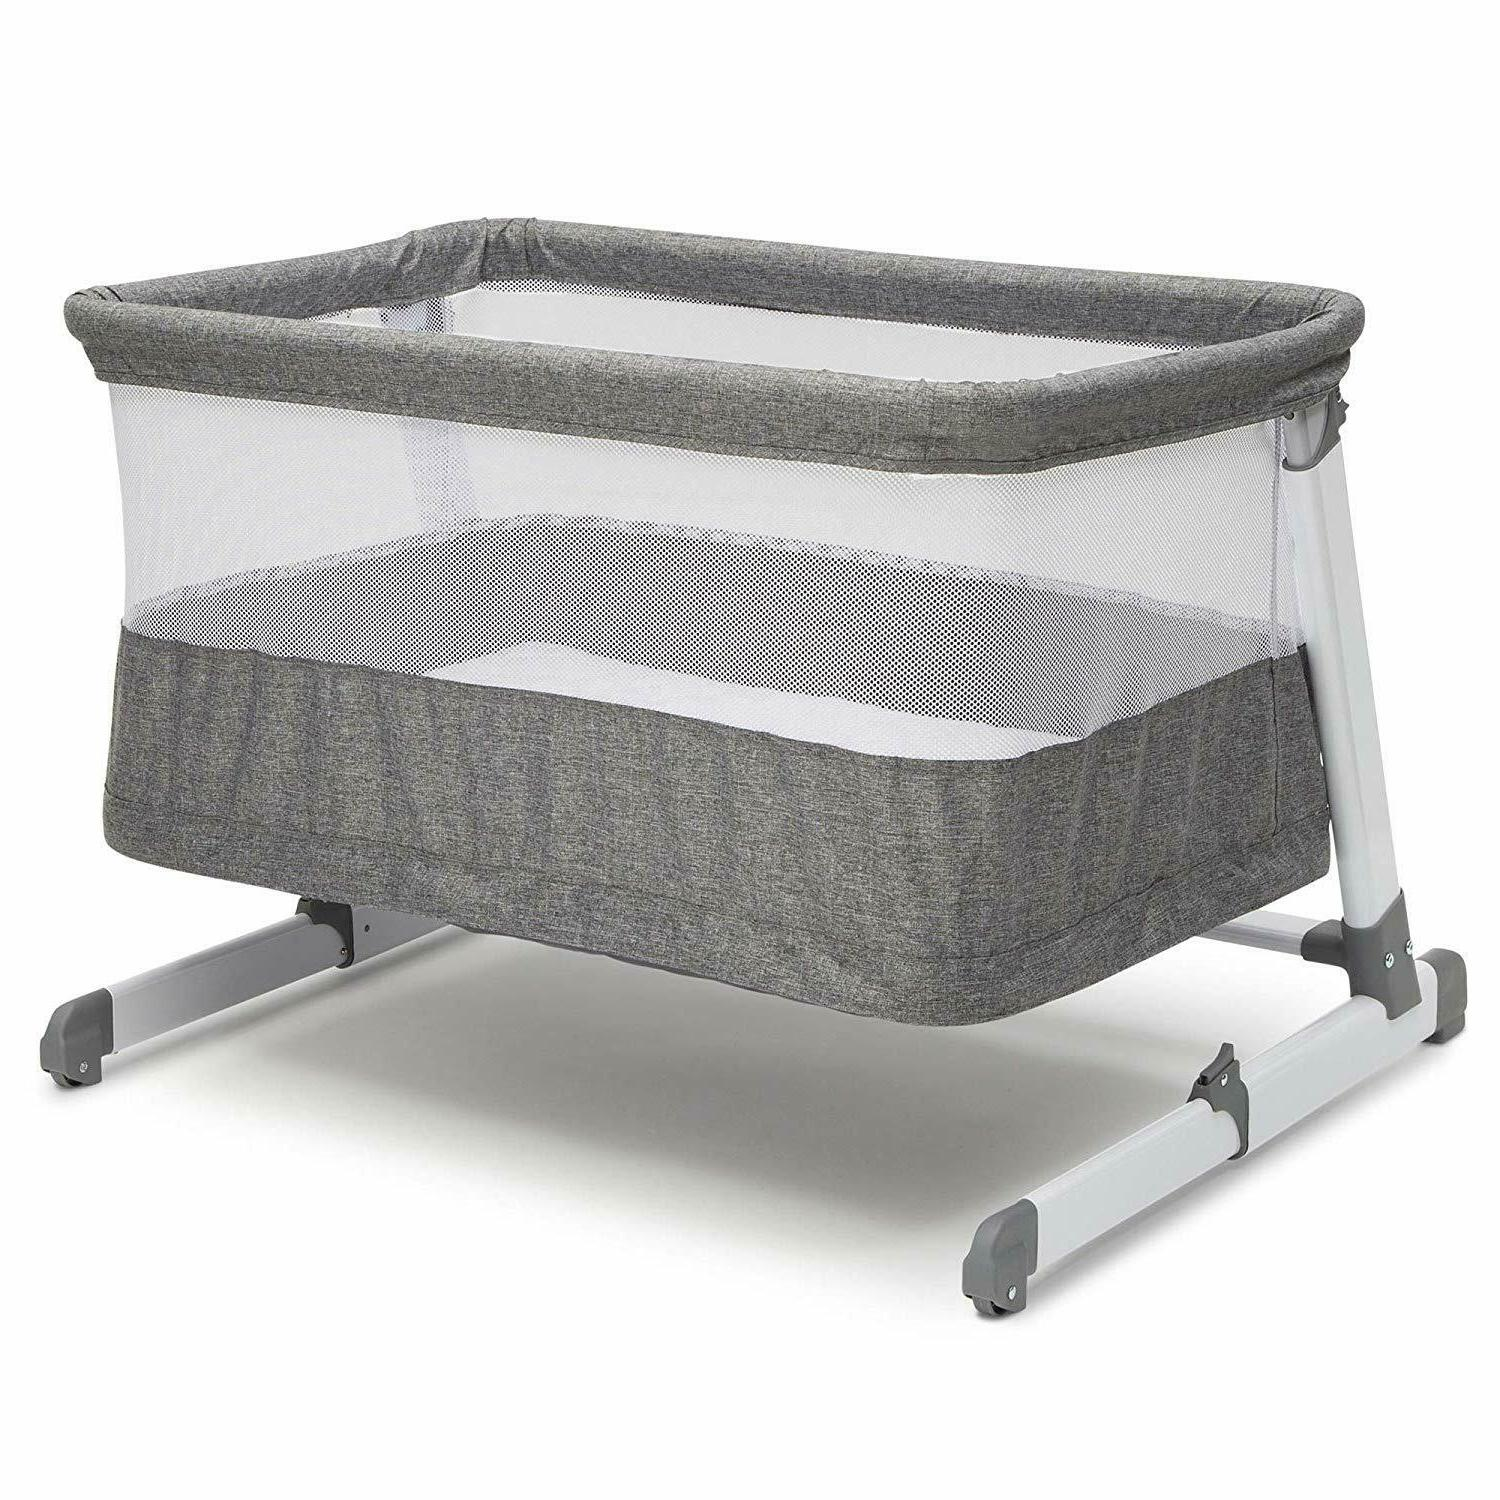 Graco Newborn Bassinet Simmons Kids Room2grow Newborn Bassinet To Infant Sleeper